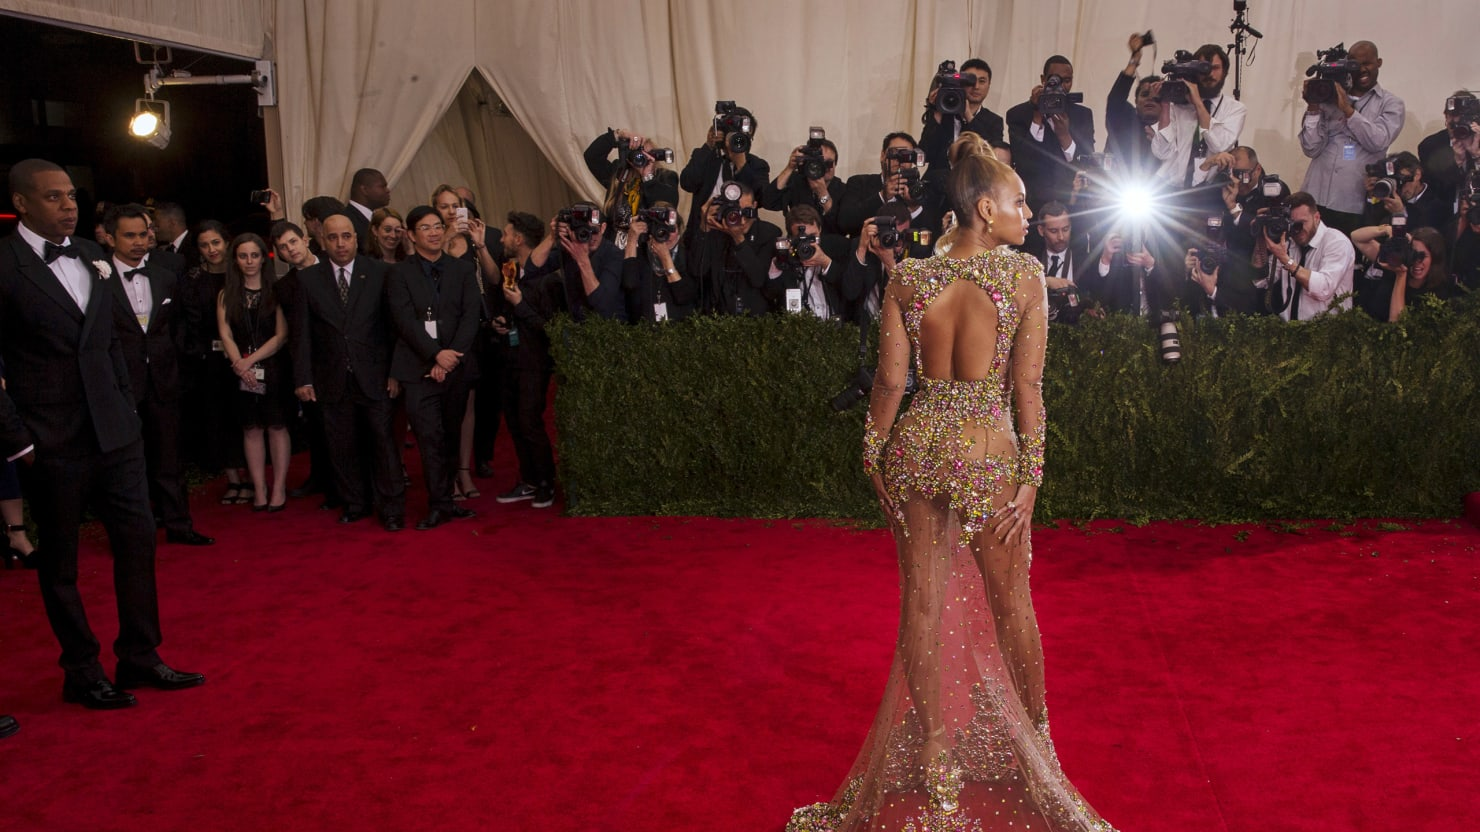 How Nearly Nude Celebrities Took Over the Red Carpet